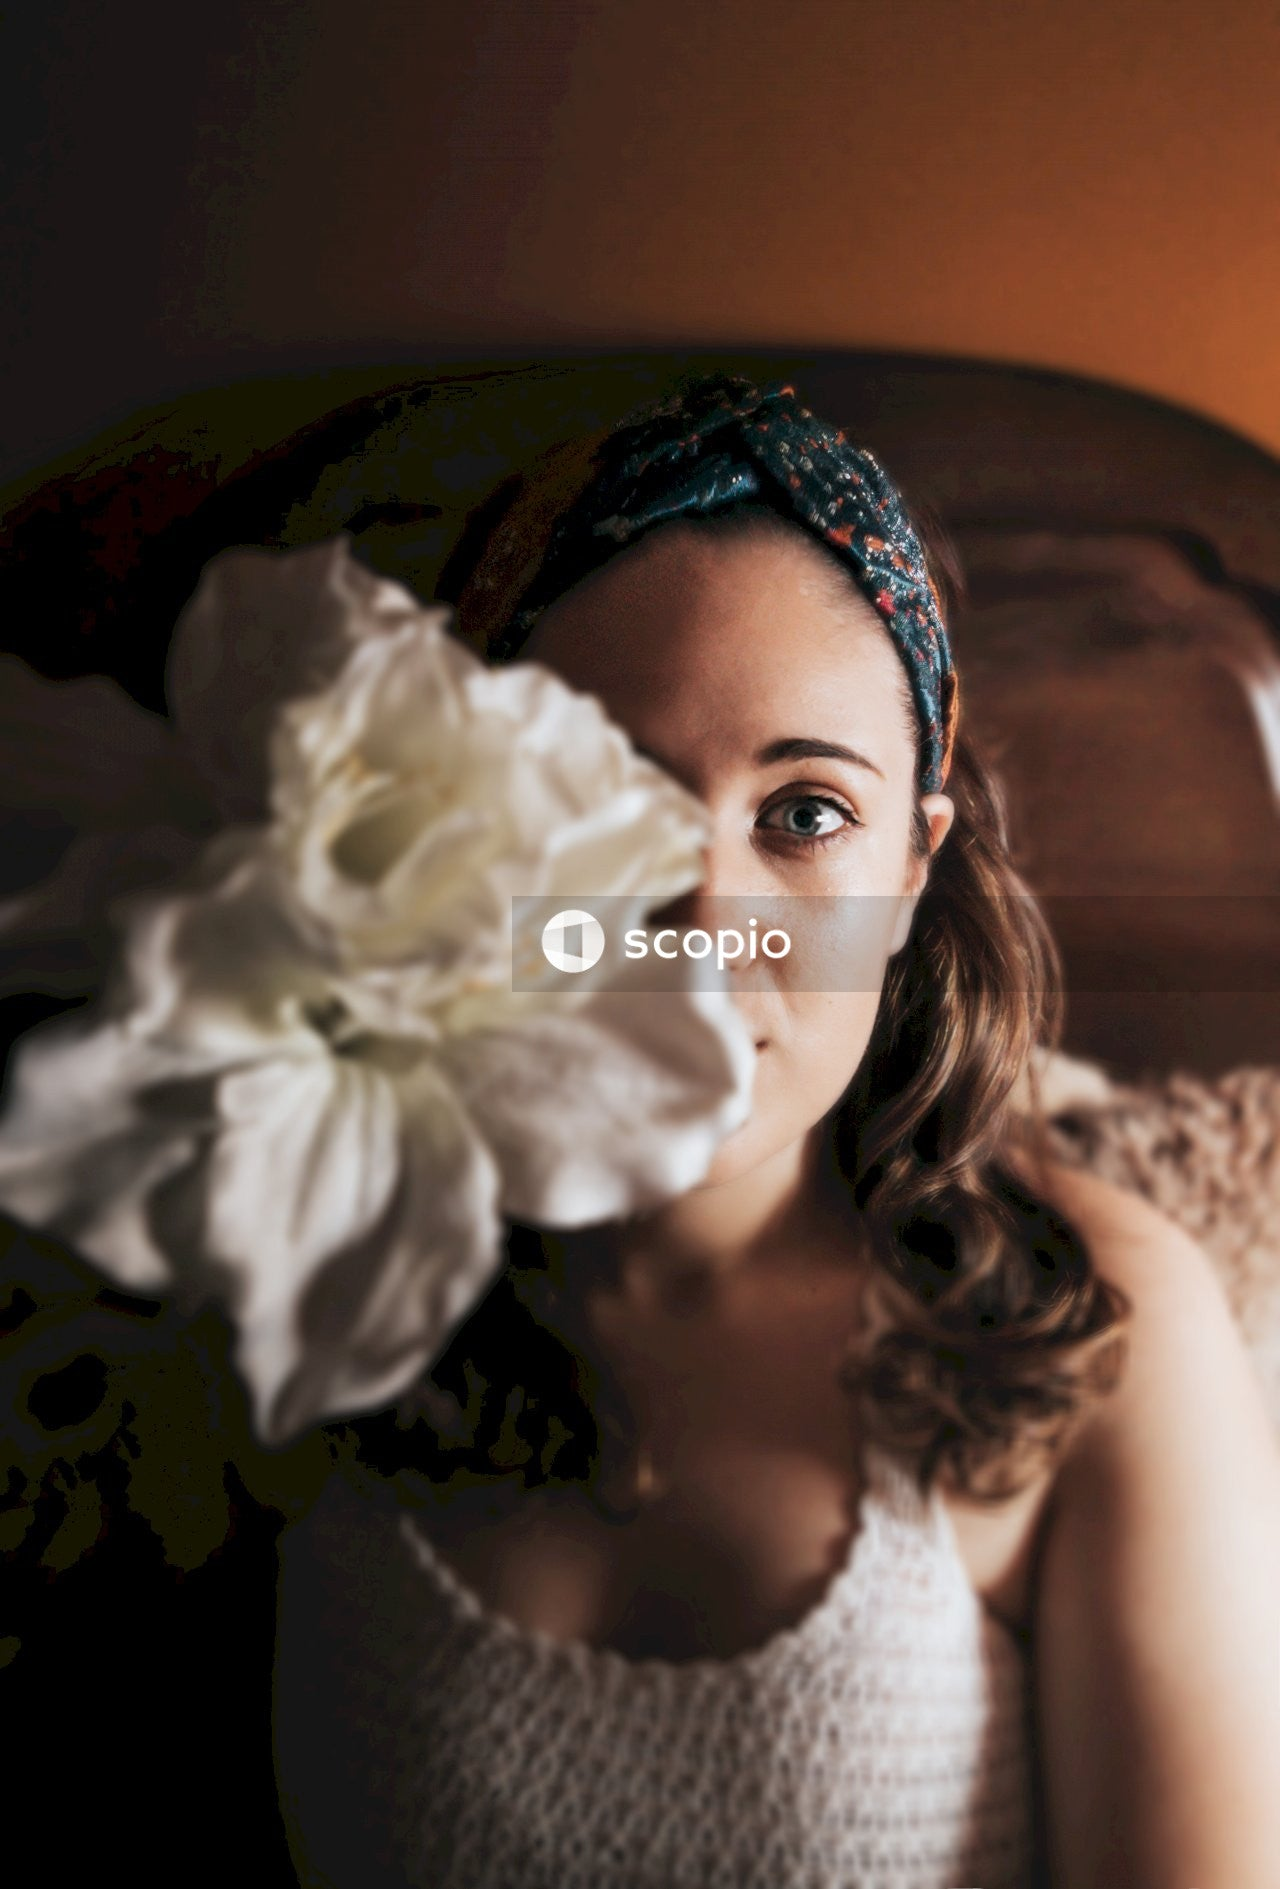 Woman in white floral dress with blue and white floral headdress